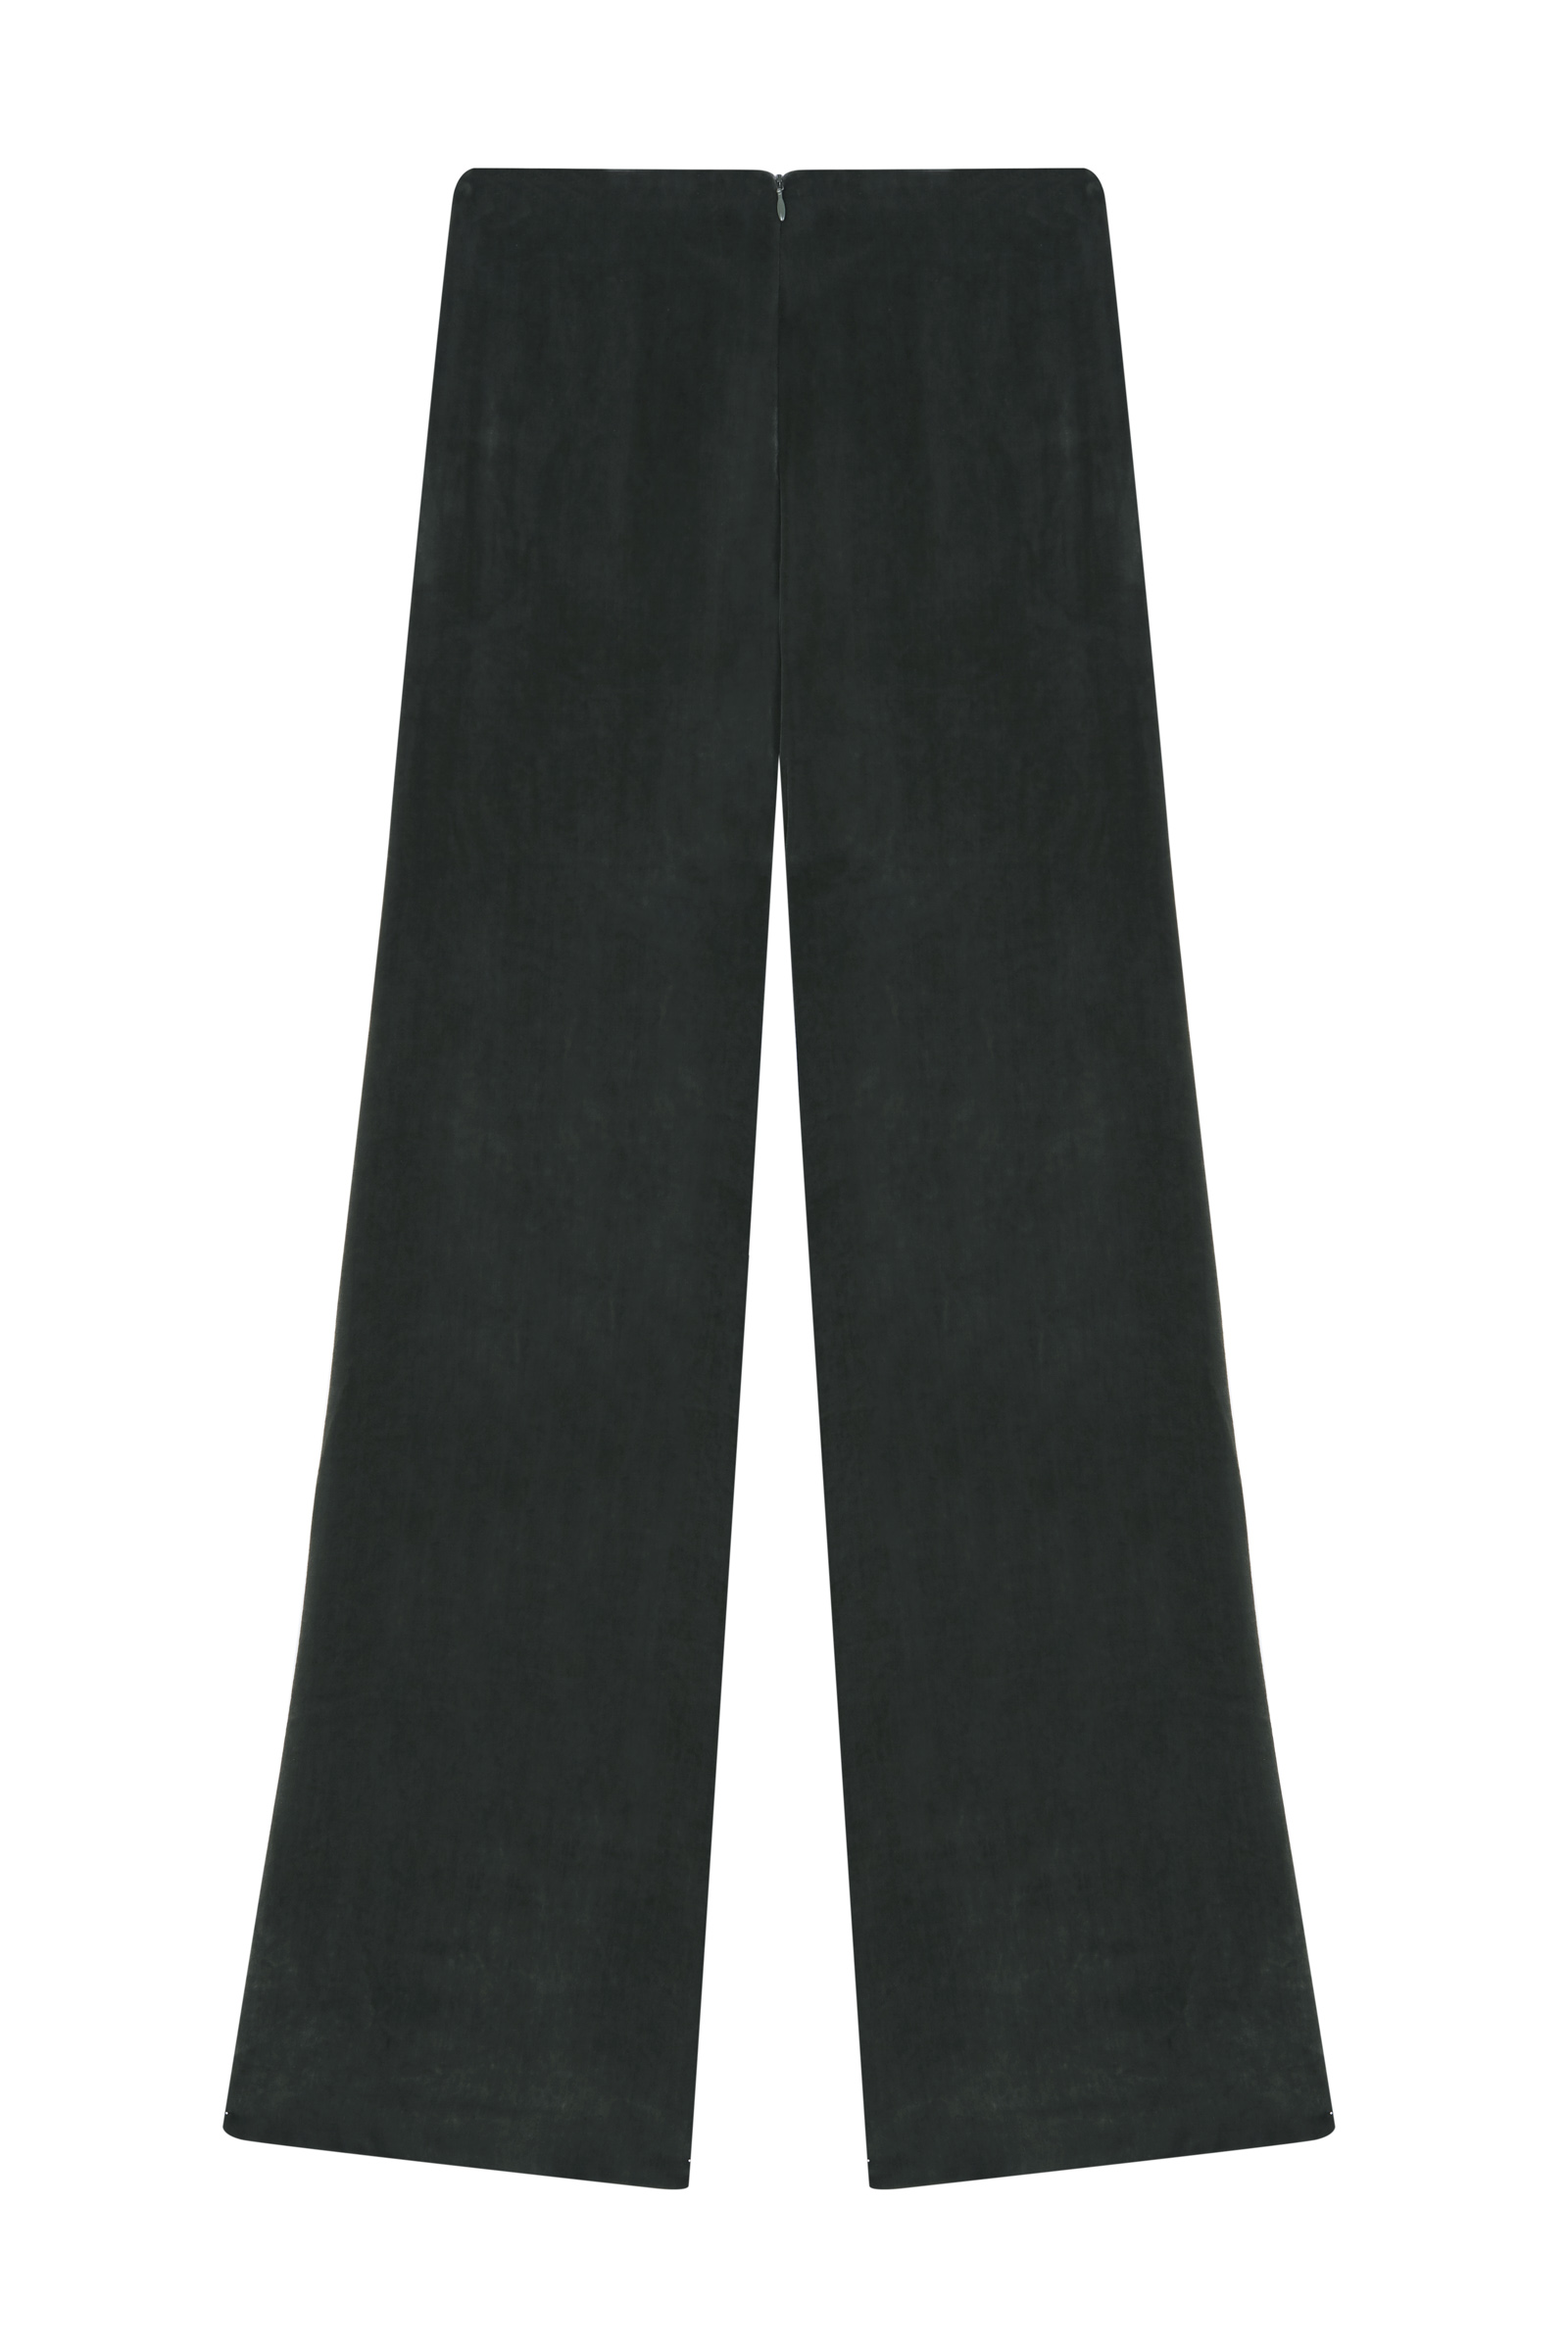 BORNEO, DARK GREEN PANTS - Cortana Moda